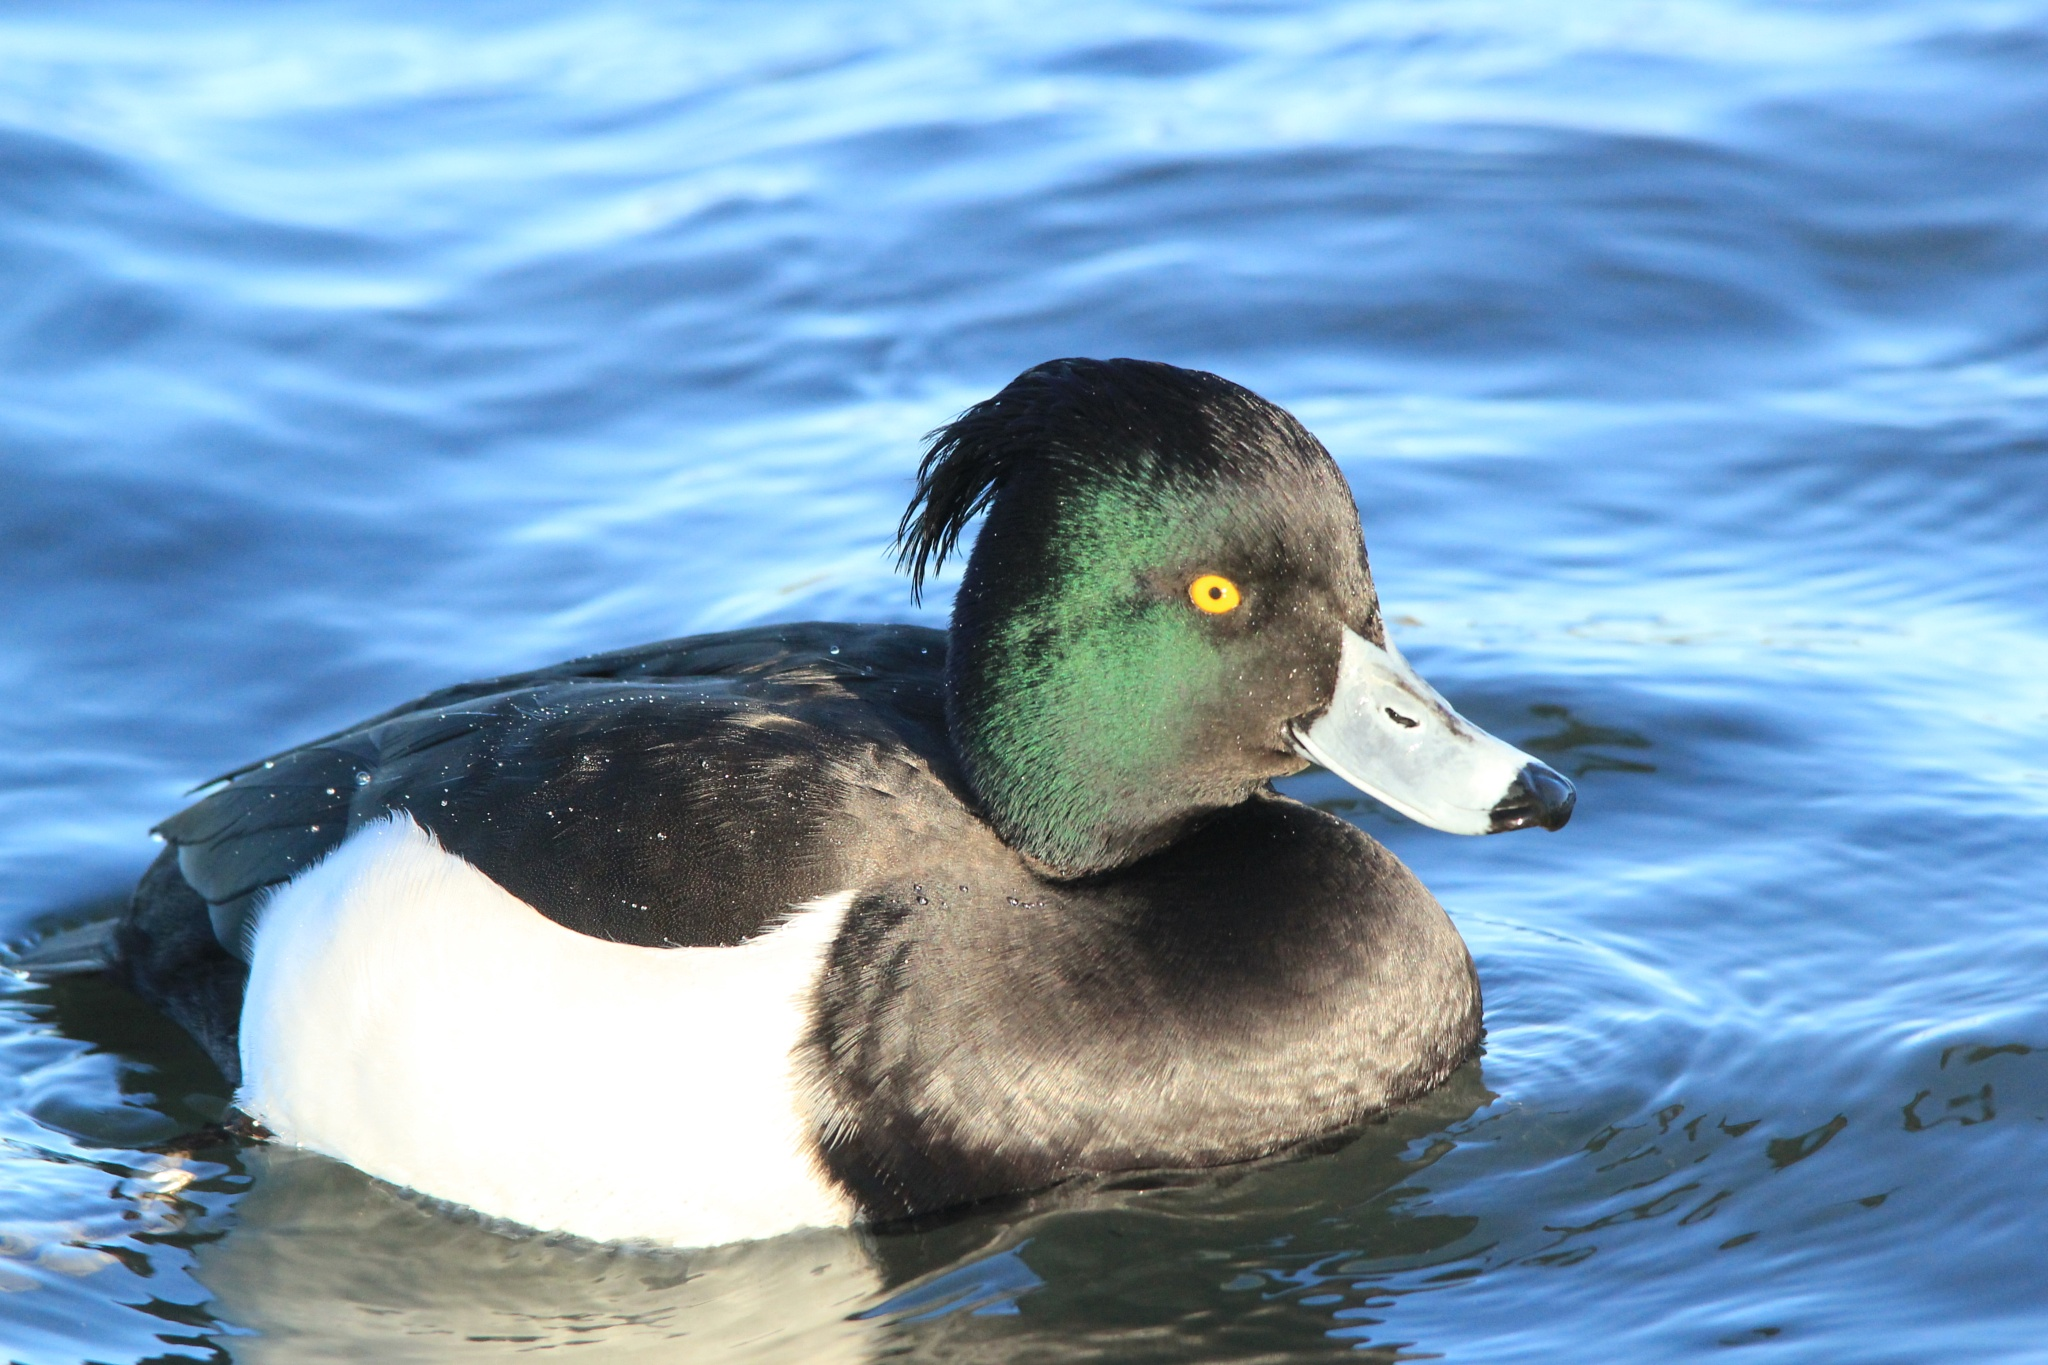 Male Tufted Duck by annecotton